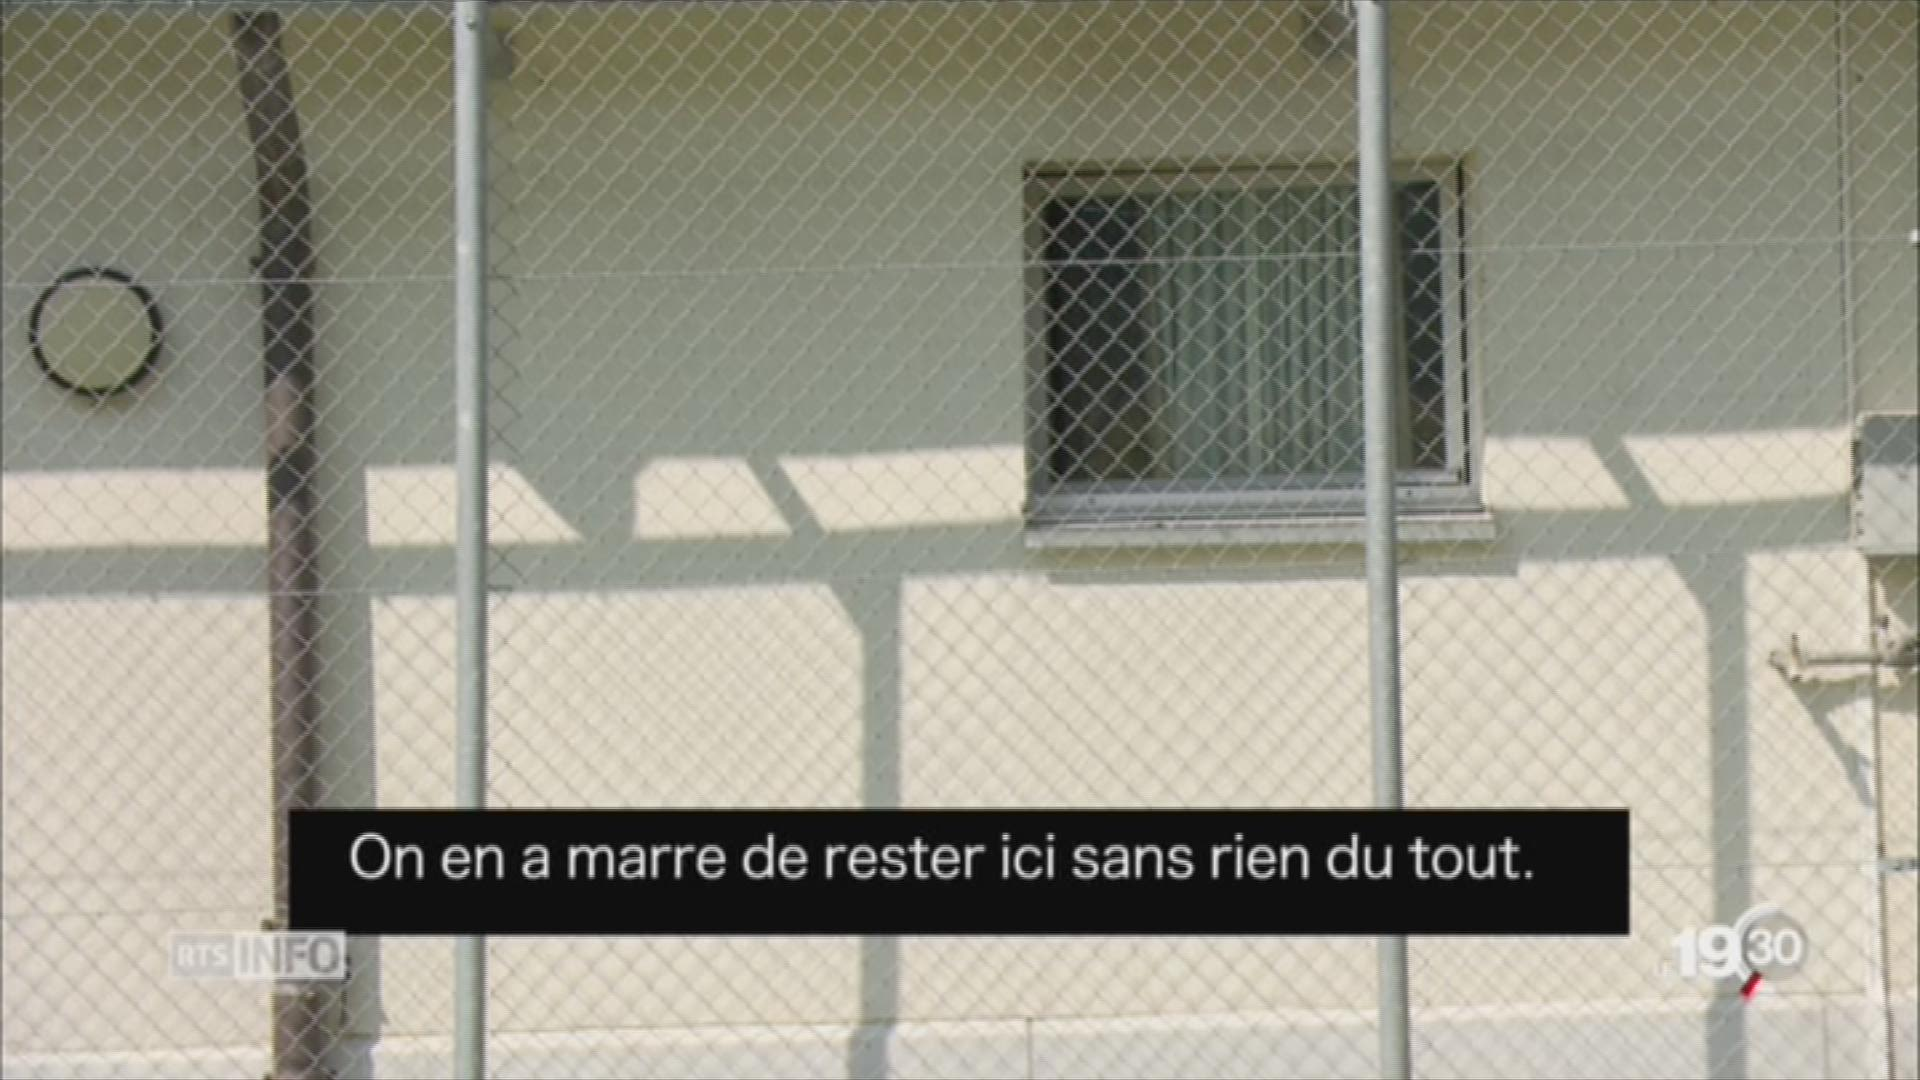 Immersion dans le centre de détention pour migrants de Granges (VS)